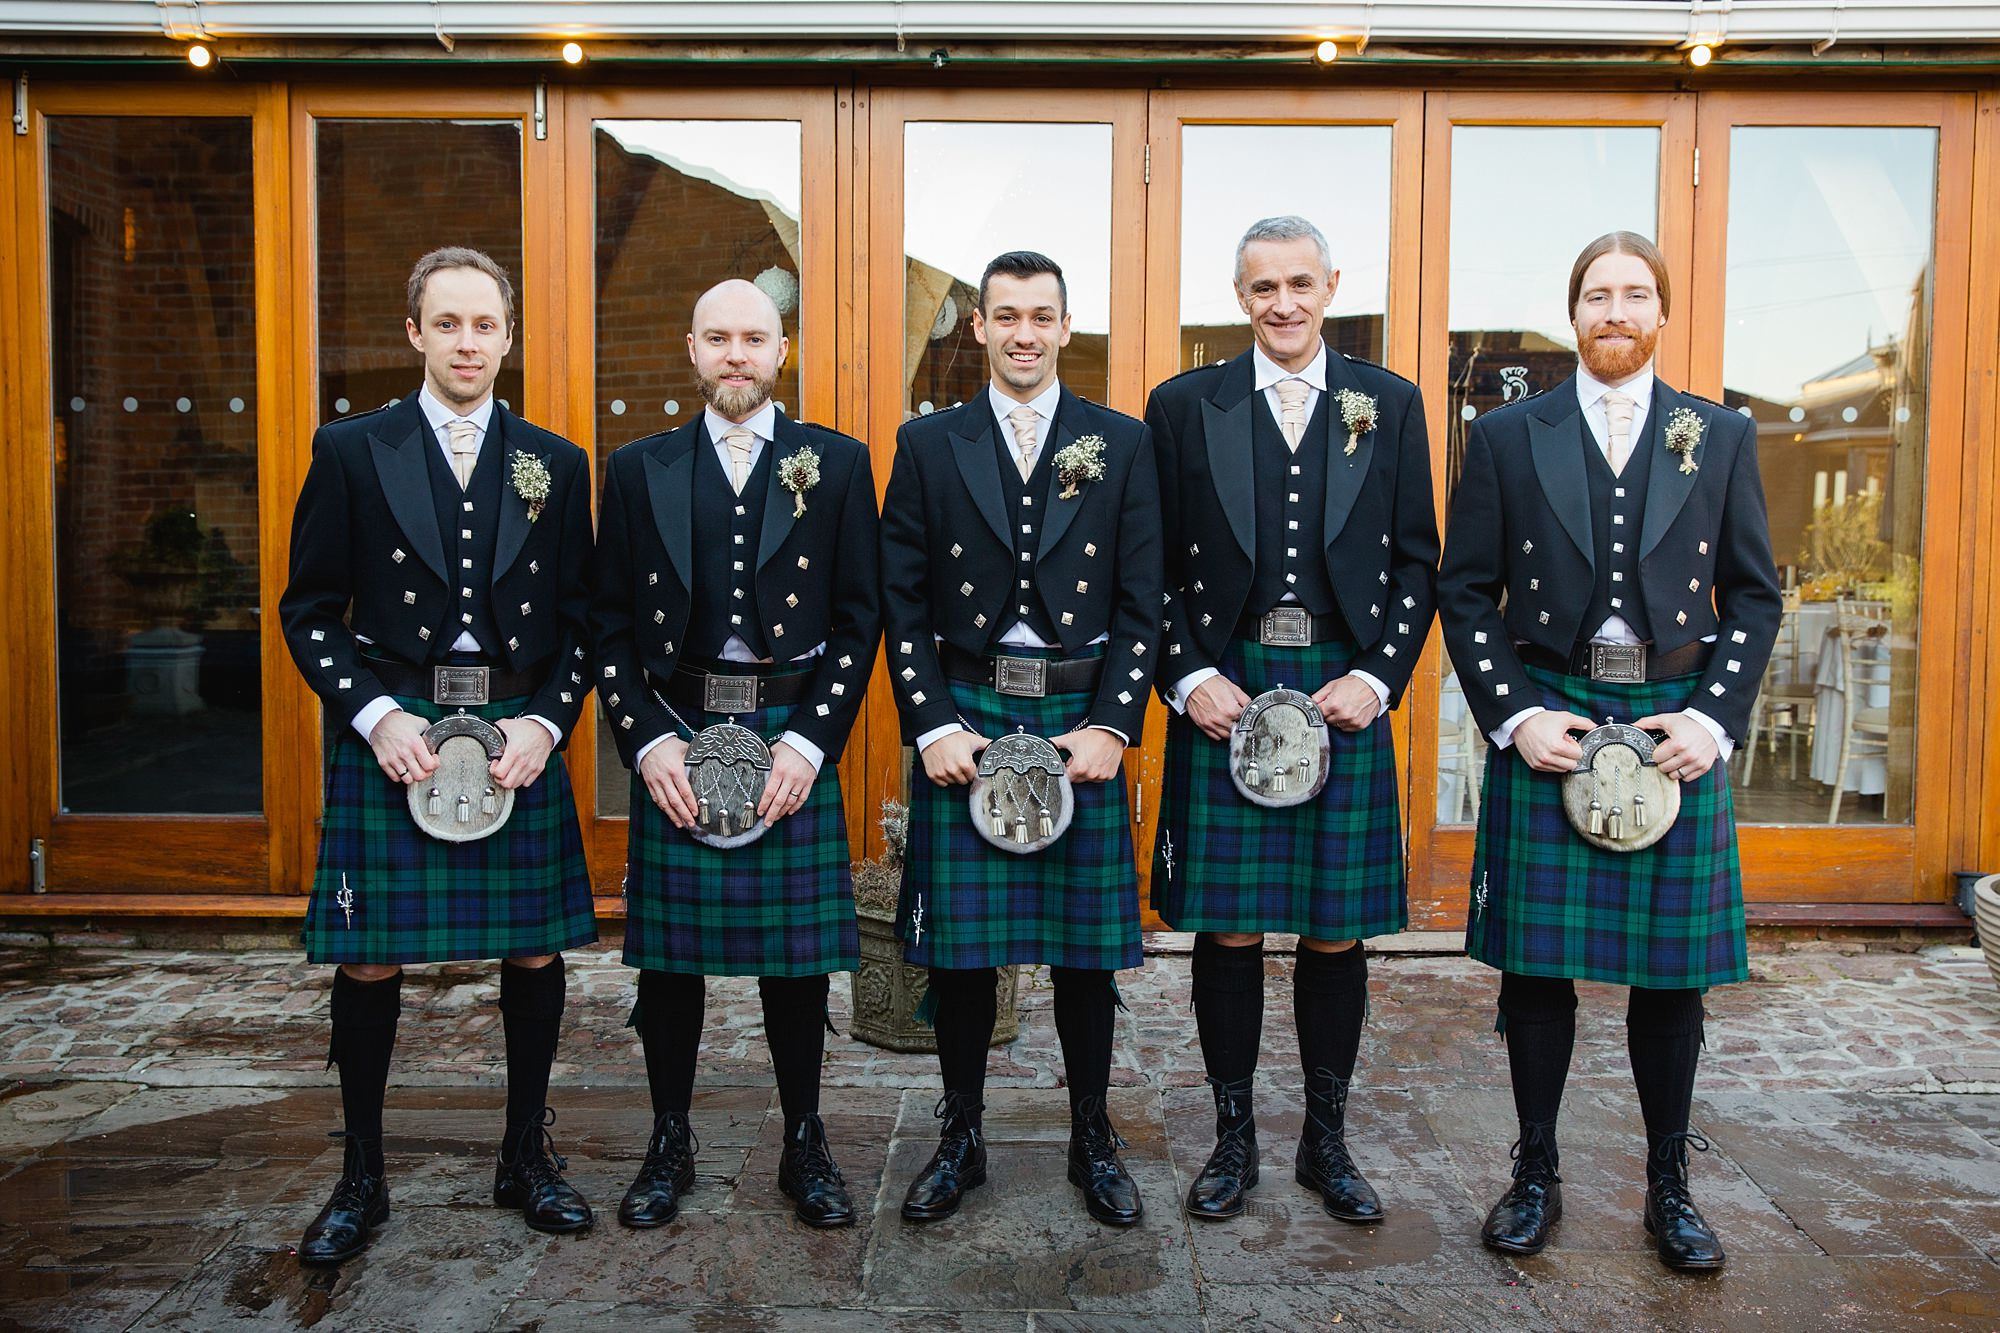 swancar farm wedding groomsmen in kilts